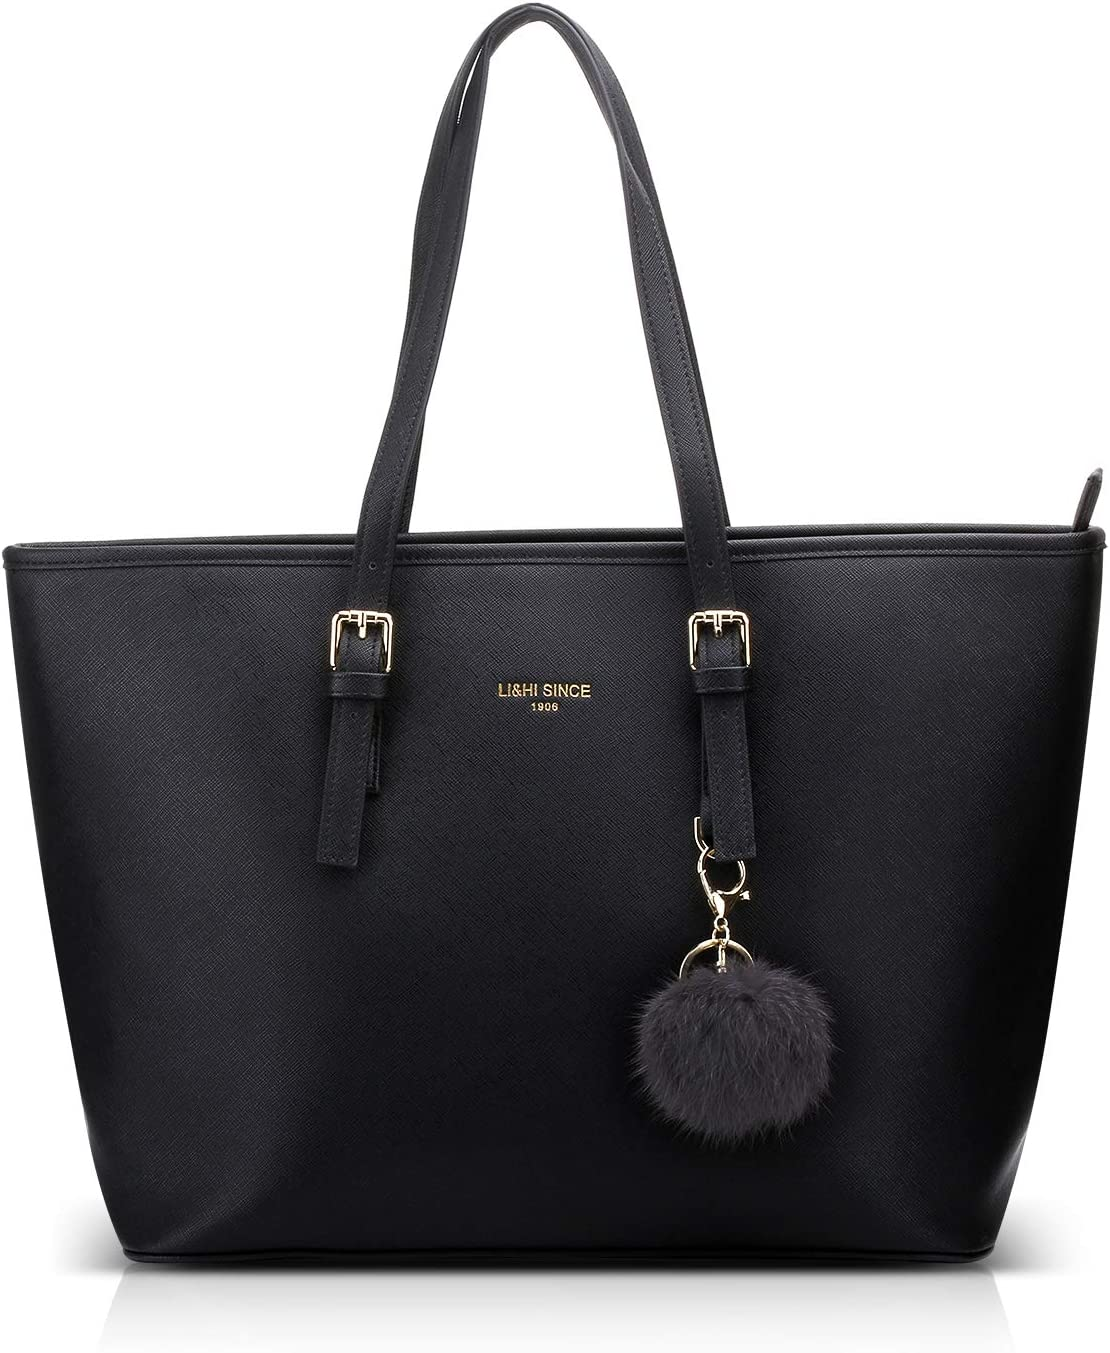 LI&HI Damen - Shopper Tasche